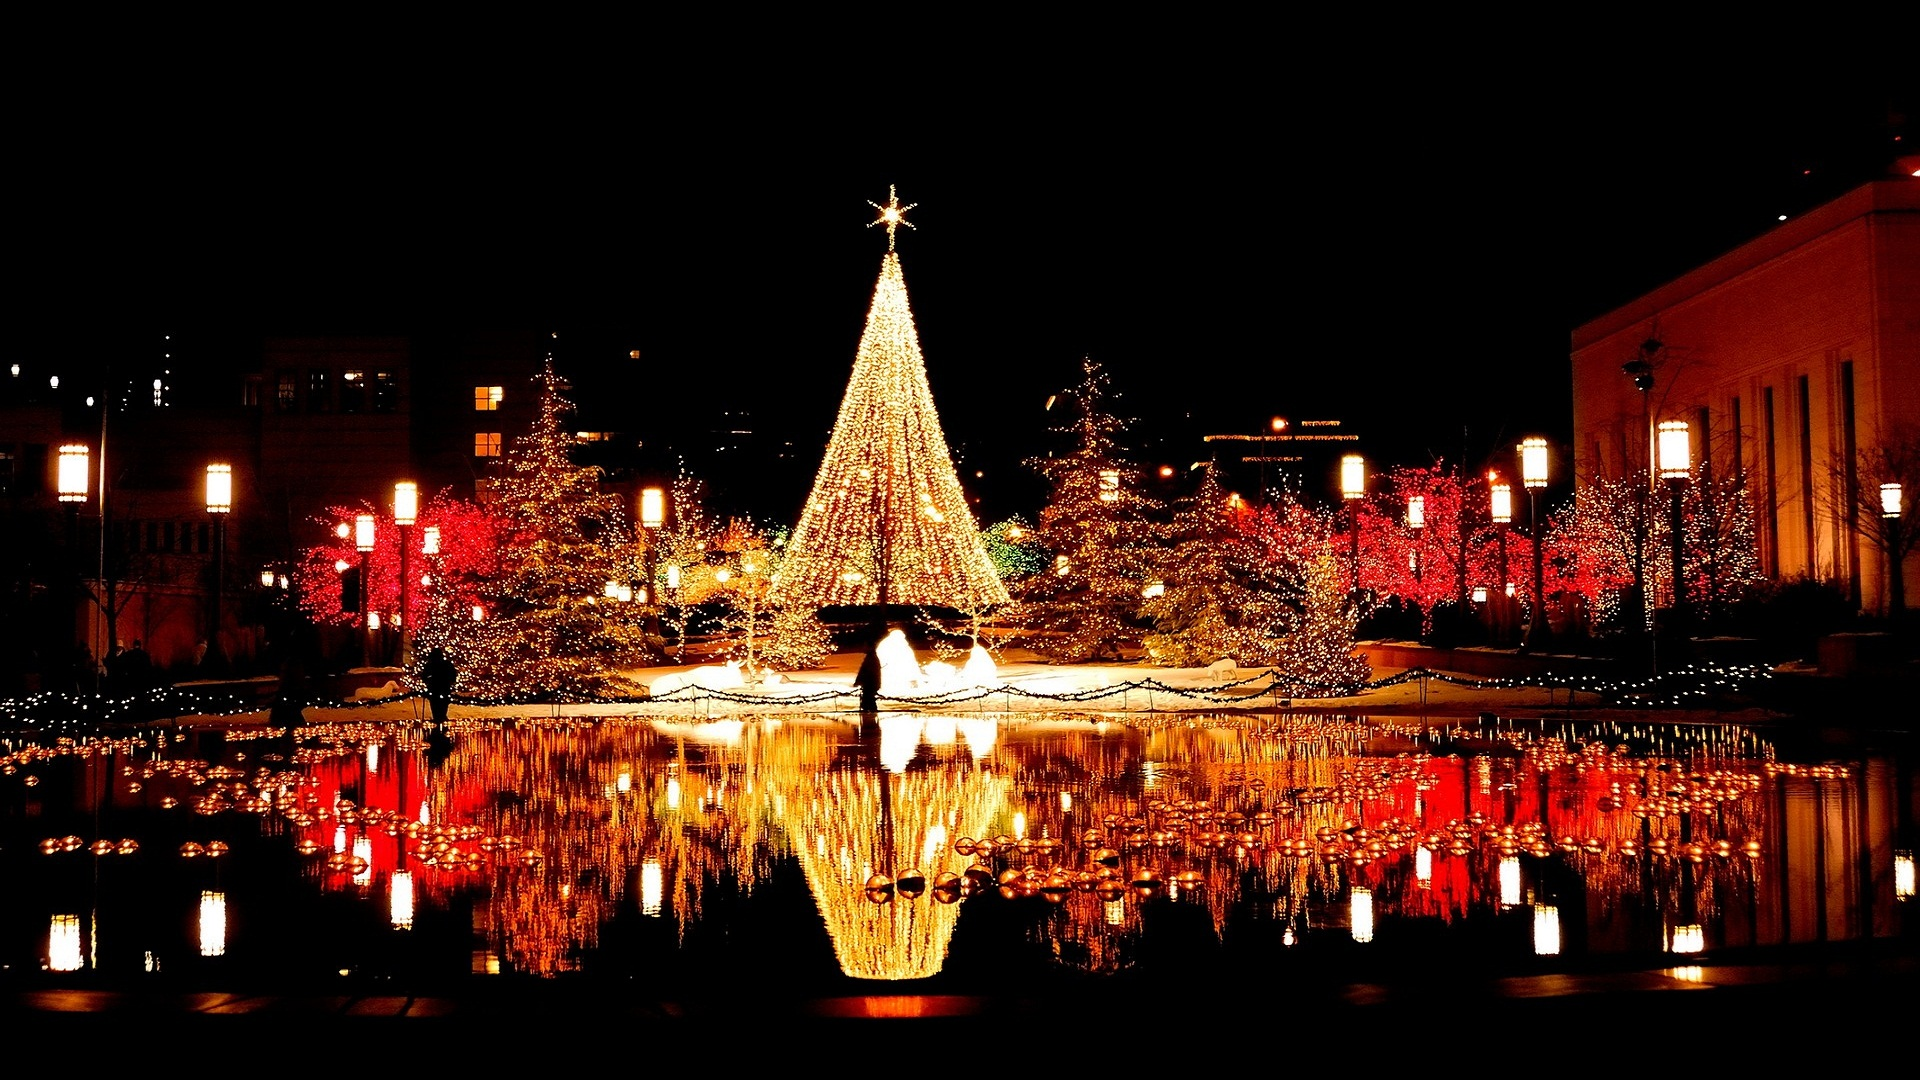 christmas reflection light 1080p hd photos